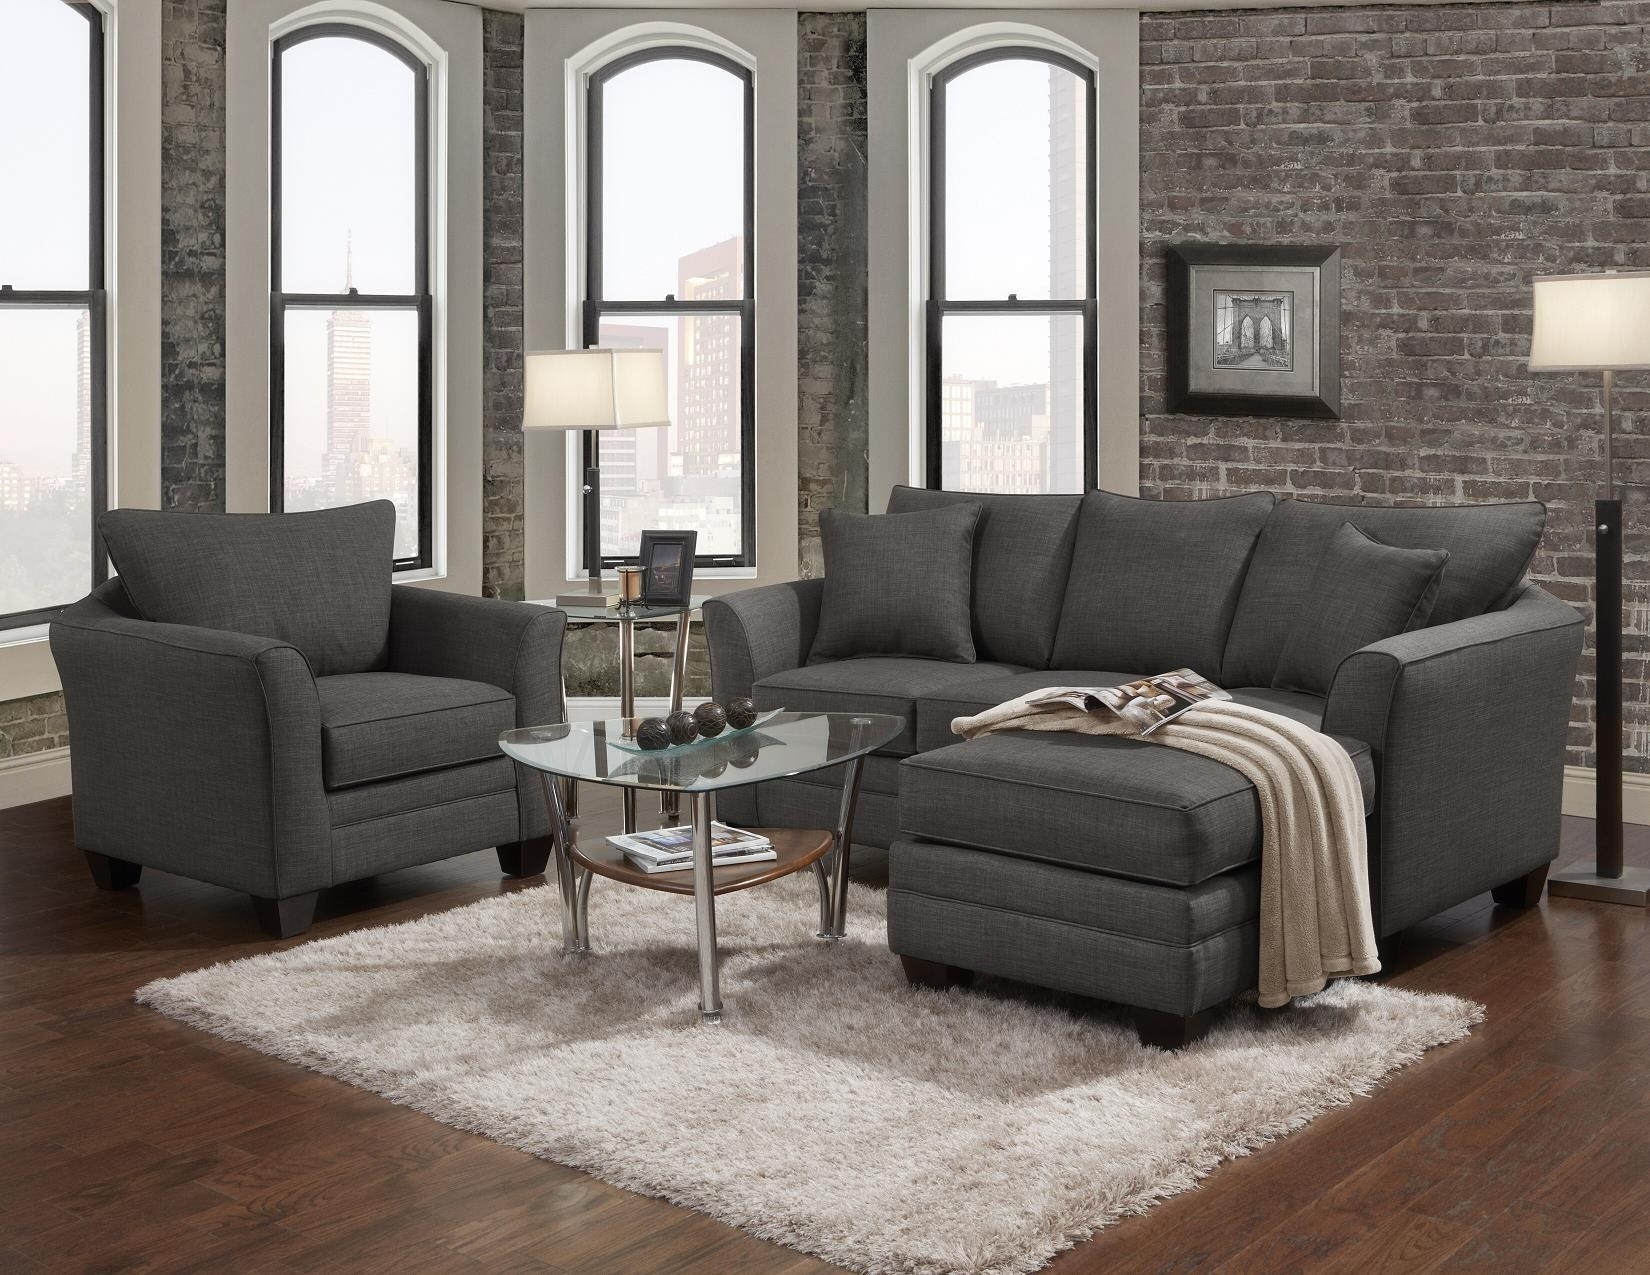 10 Choices Of London Ontario Sectional Sofas Sofa Ideas